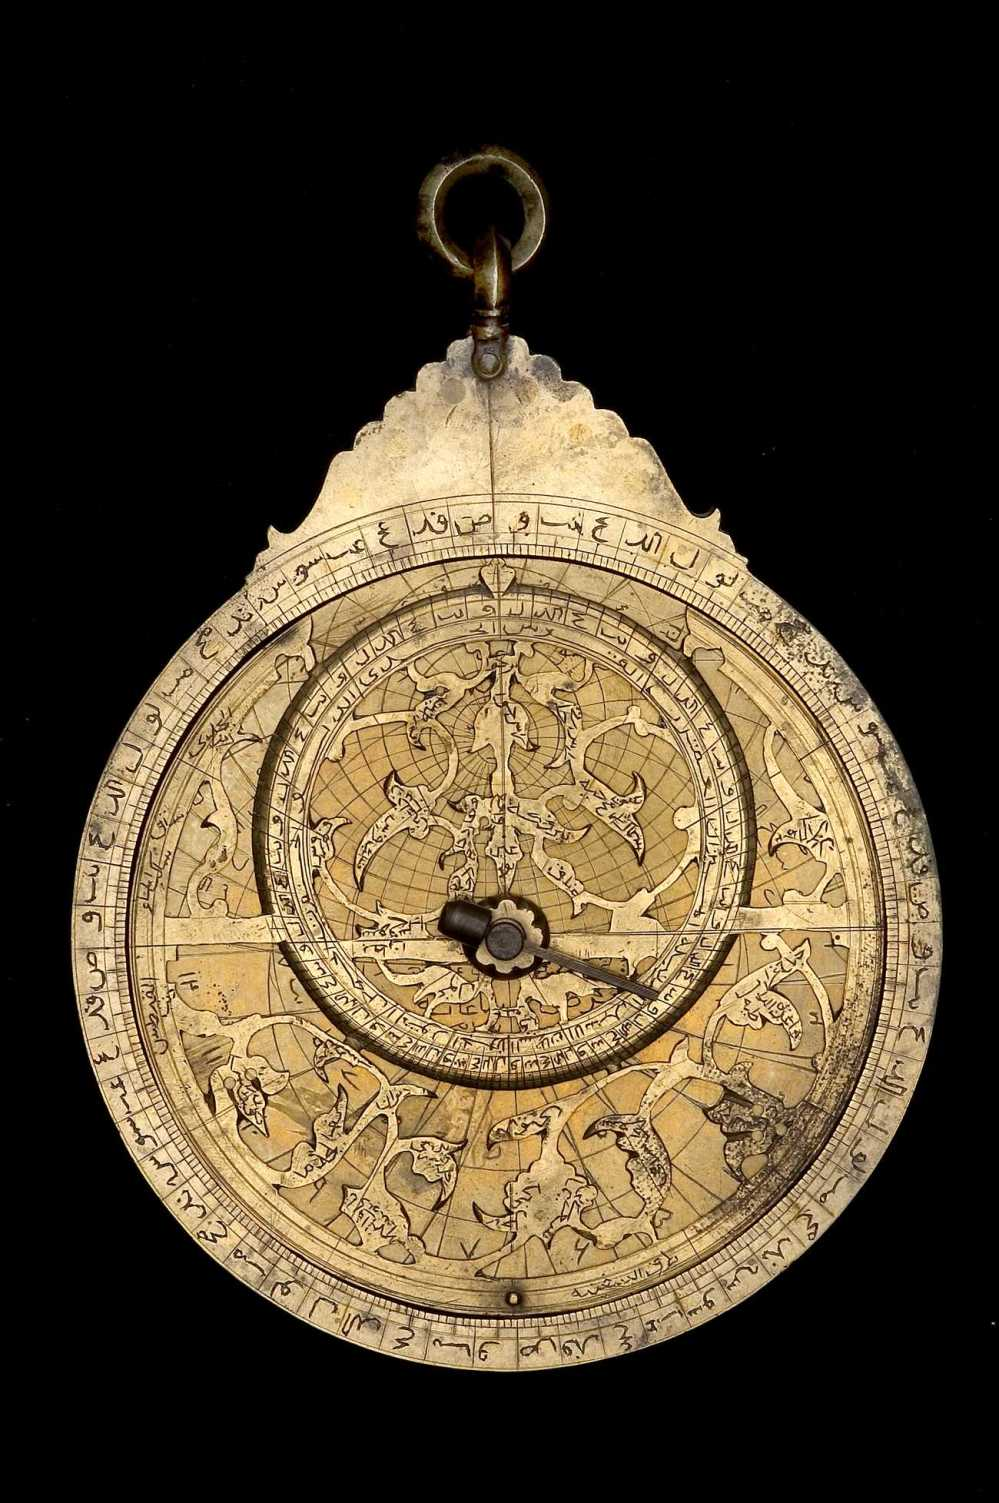 preview image for Astrolabe, by Sayyid 'Abd al-Baqi, Indo-Persian, 1789/90